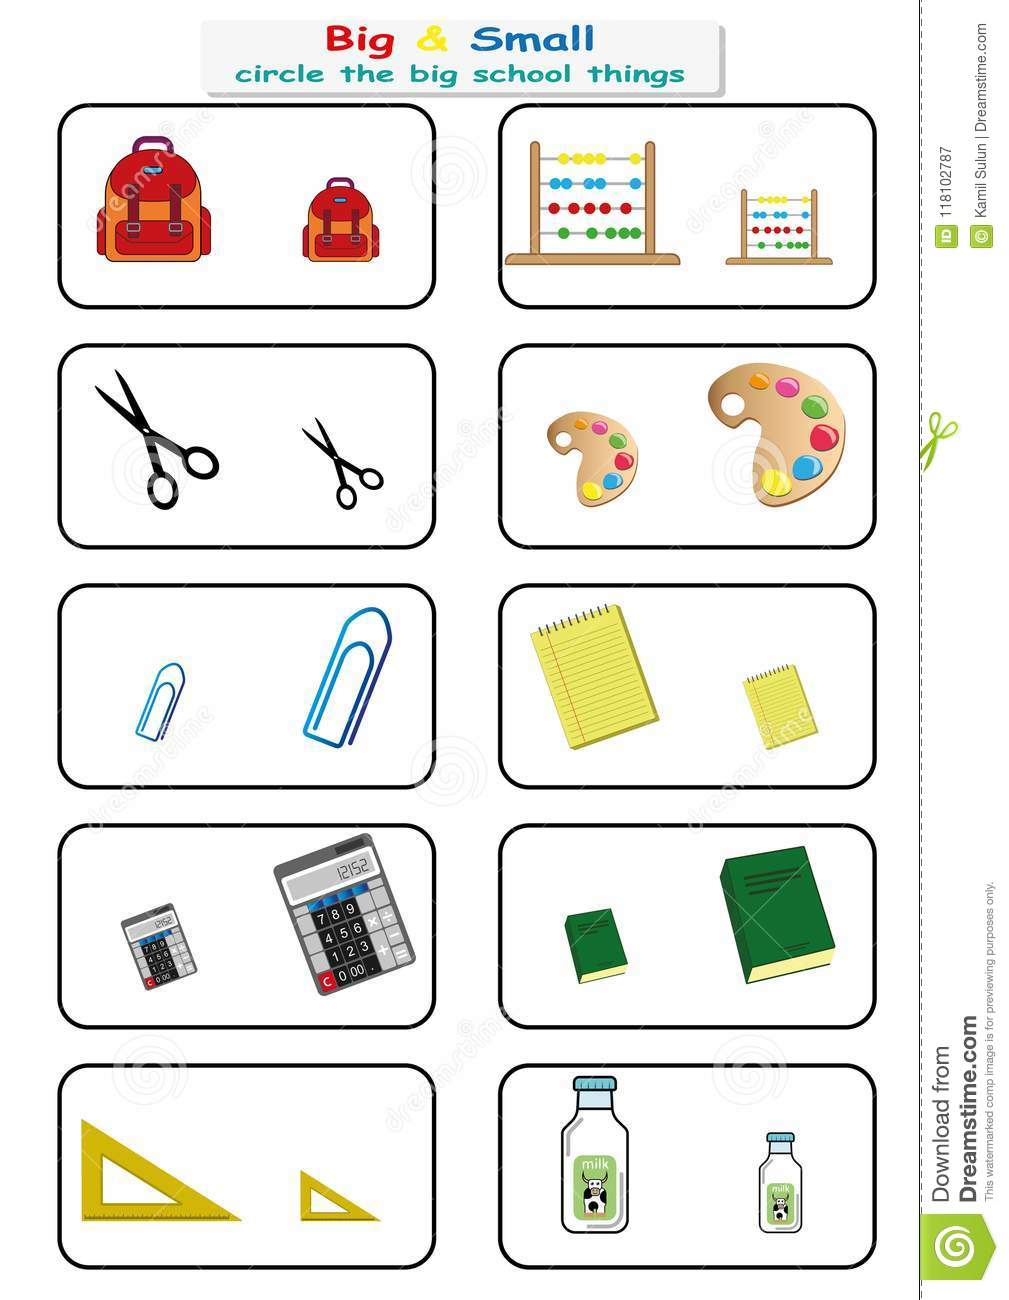 Circle The Big School Things, Find Big Or Small Worksheet For Kids ...